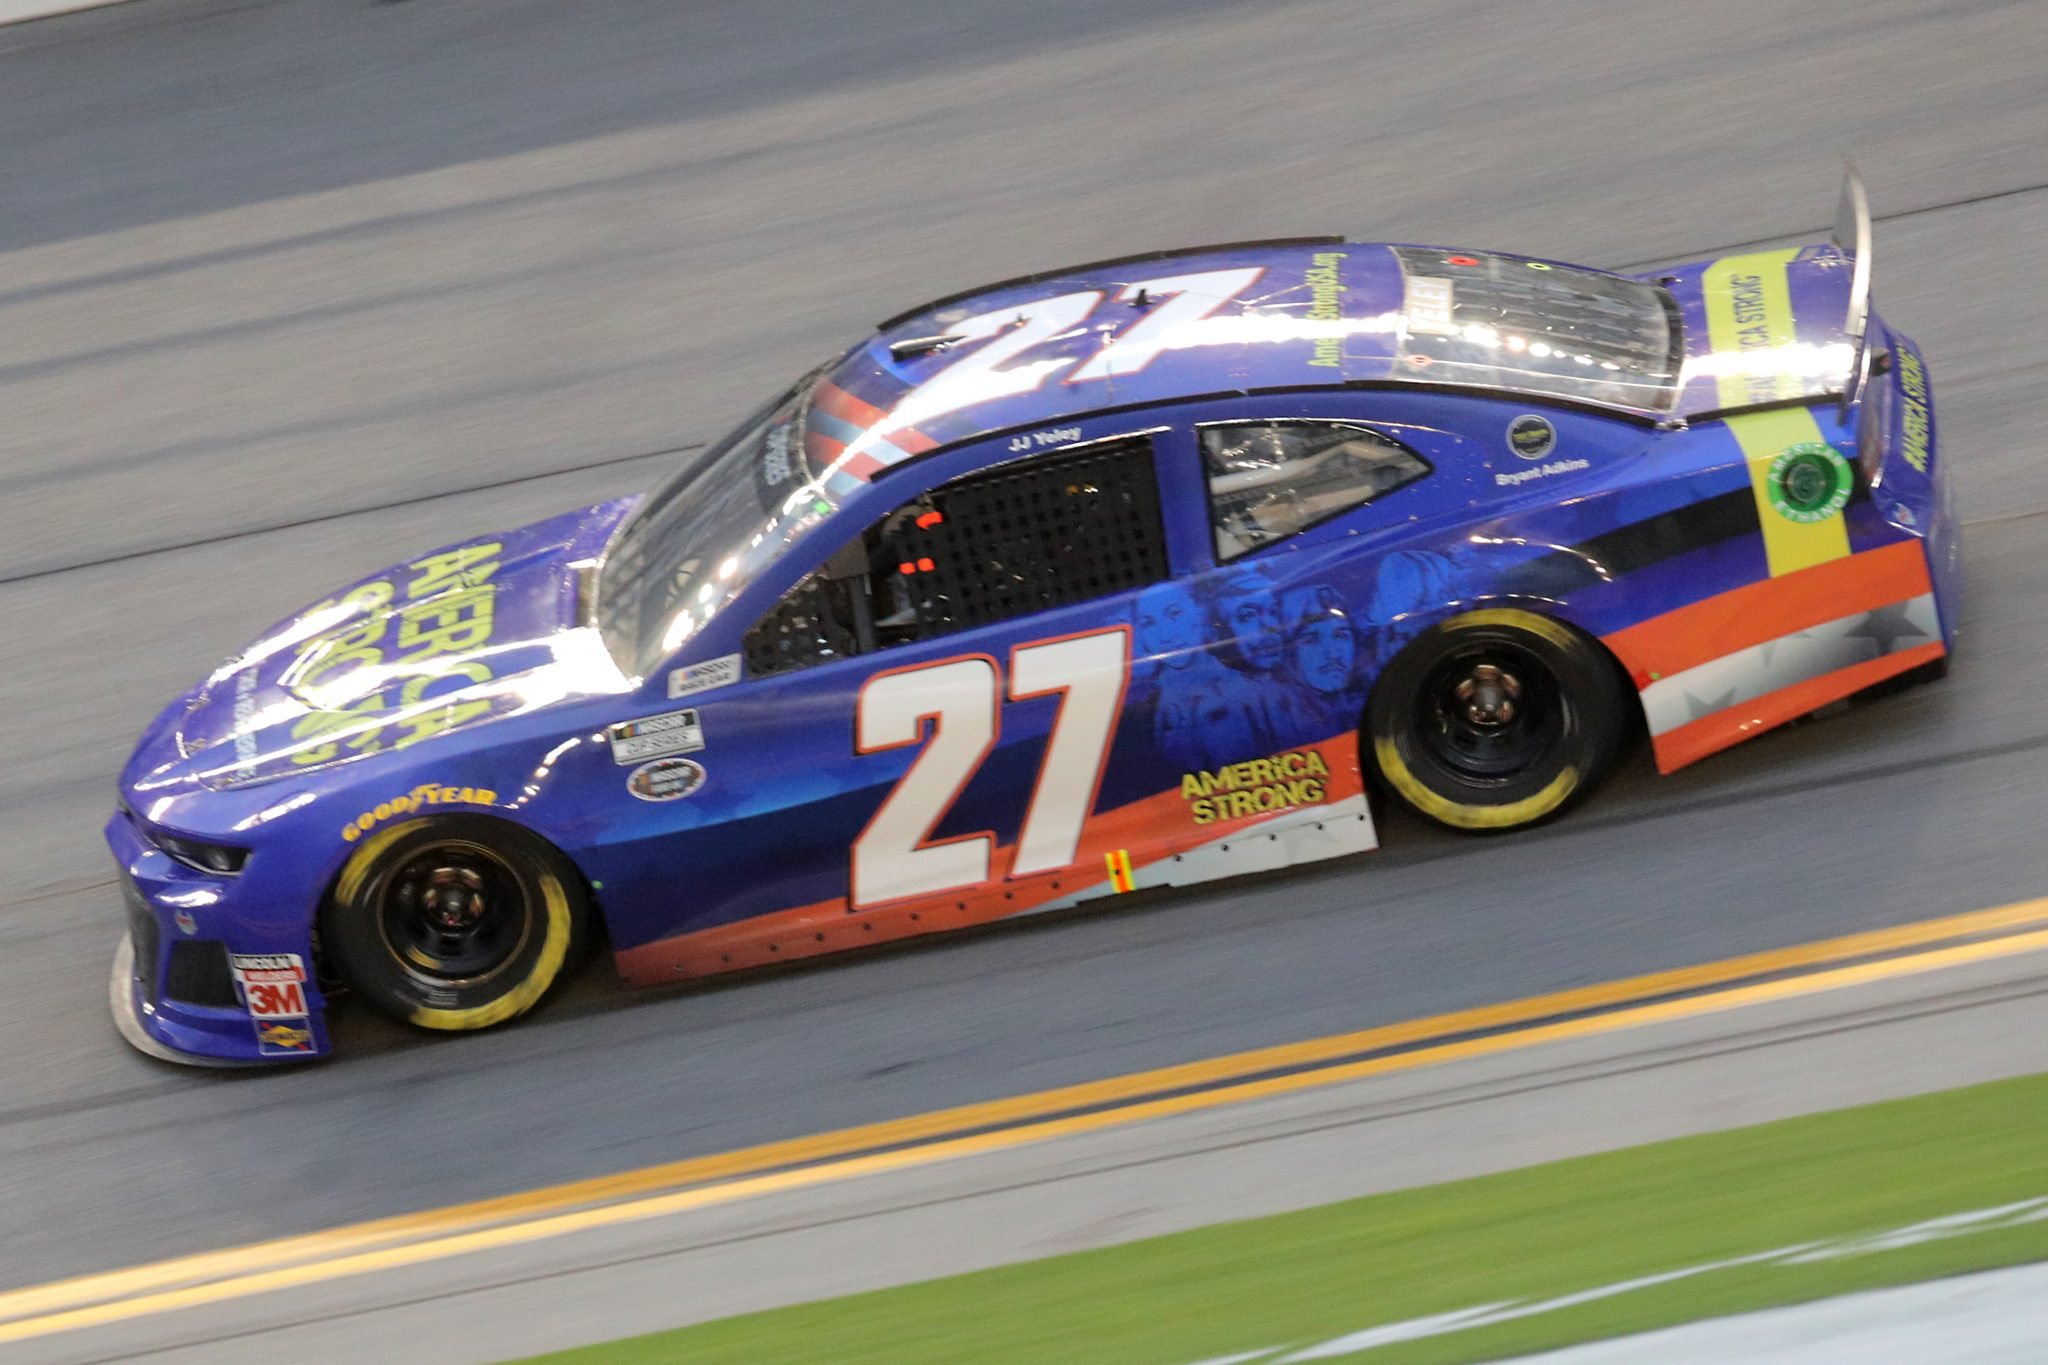 DAYTONA BEACH, FLORIDA - AUGUST 29: JJ Yeley, driver of the #27 America Strong Chevrolet, drives during the NASCAR Cup Series Coke Zero Sugar 400 at Daytona International Speedway on August 29, 2020 in Daytona Beach, Florida. (Photo by Chris Graythen/Getty Images) | Getty Images